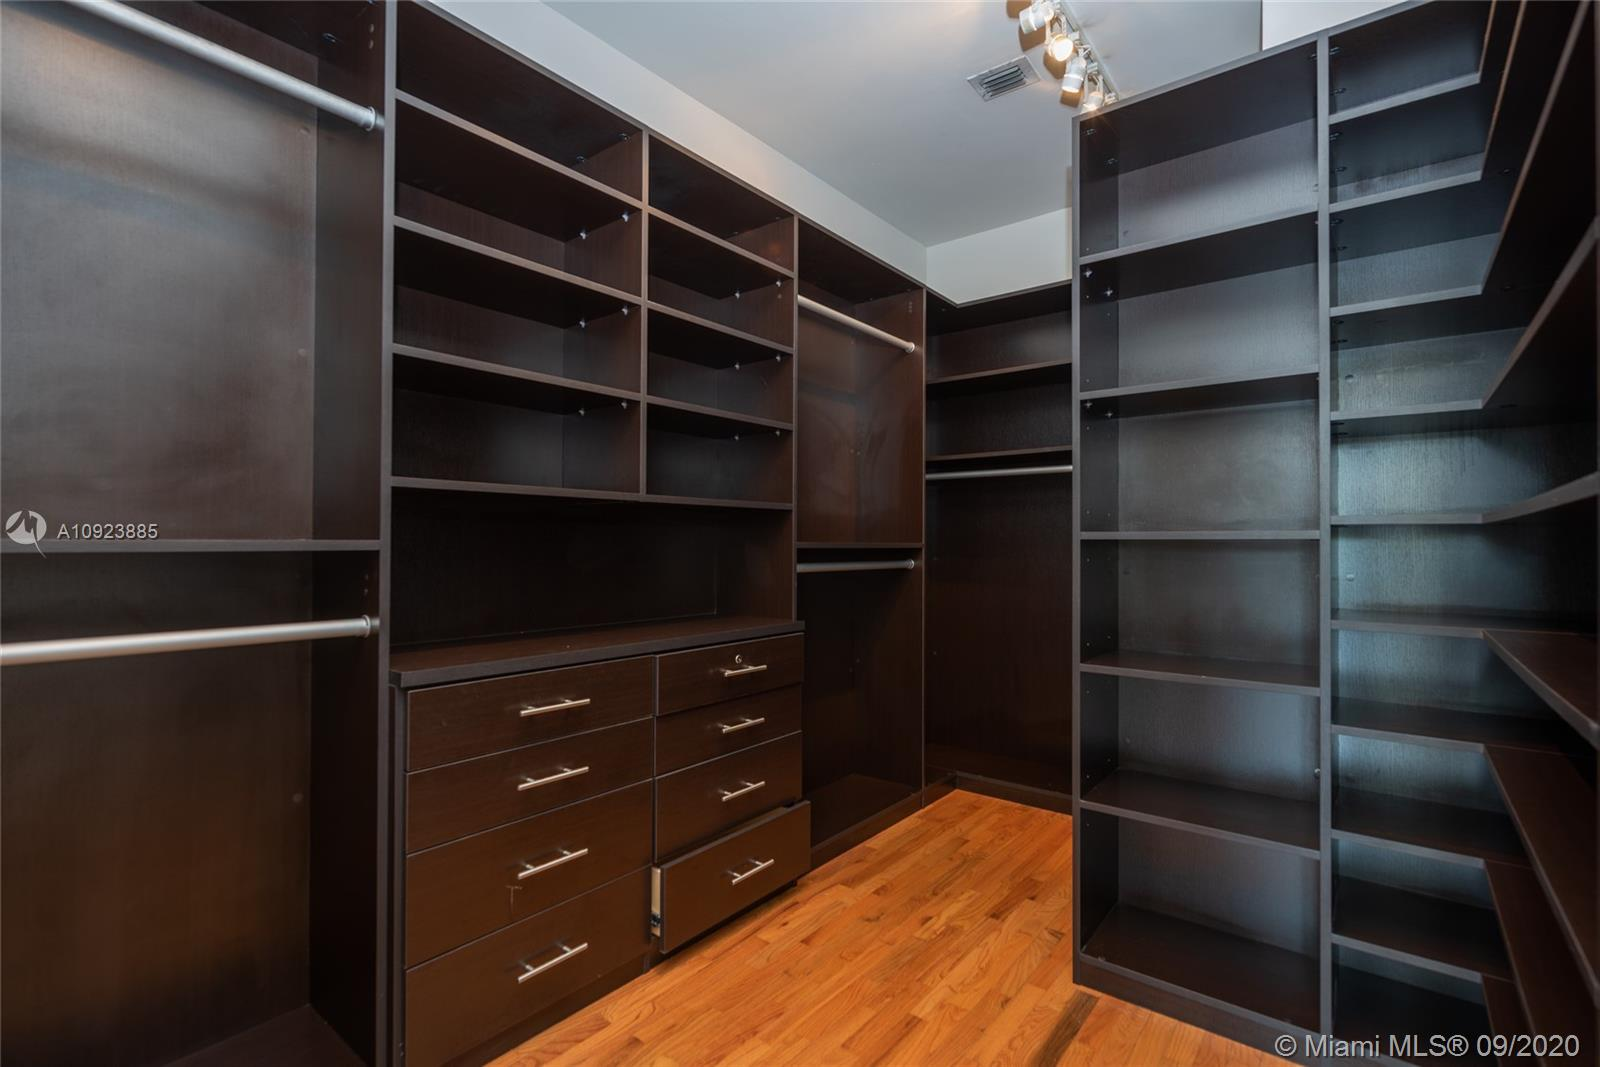 Two large walk-in built-out closets in primary bedroom